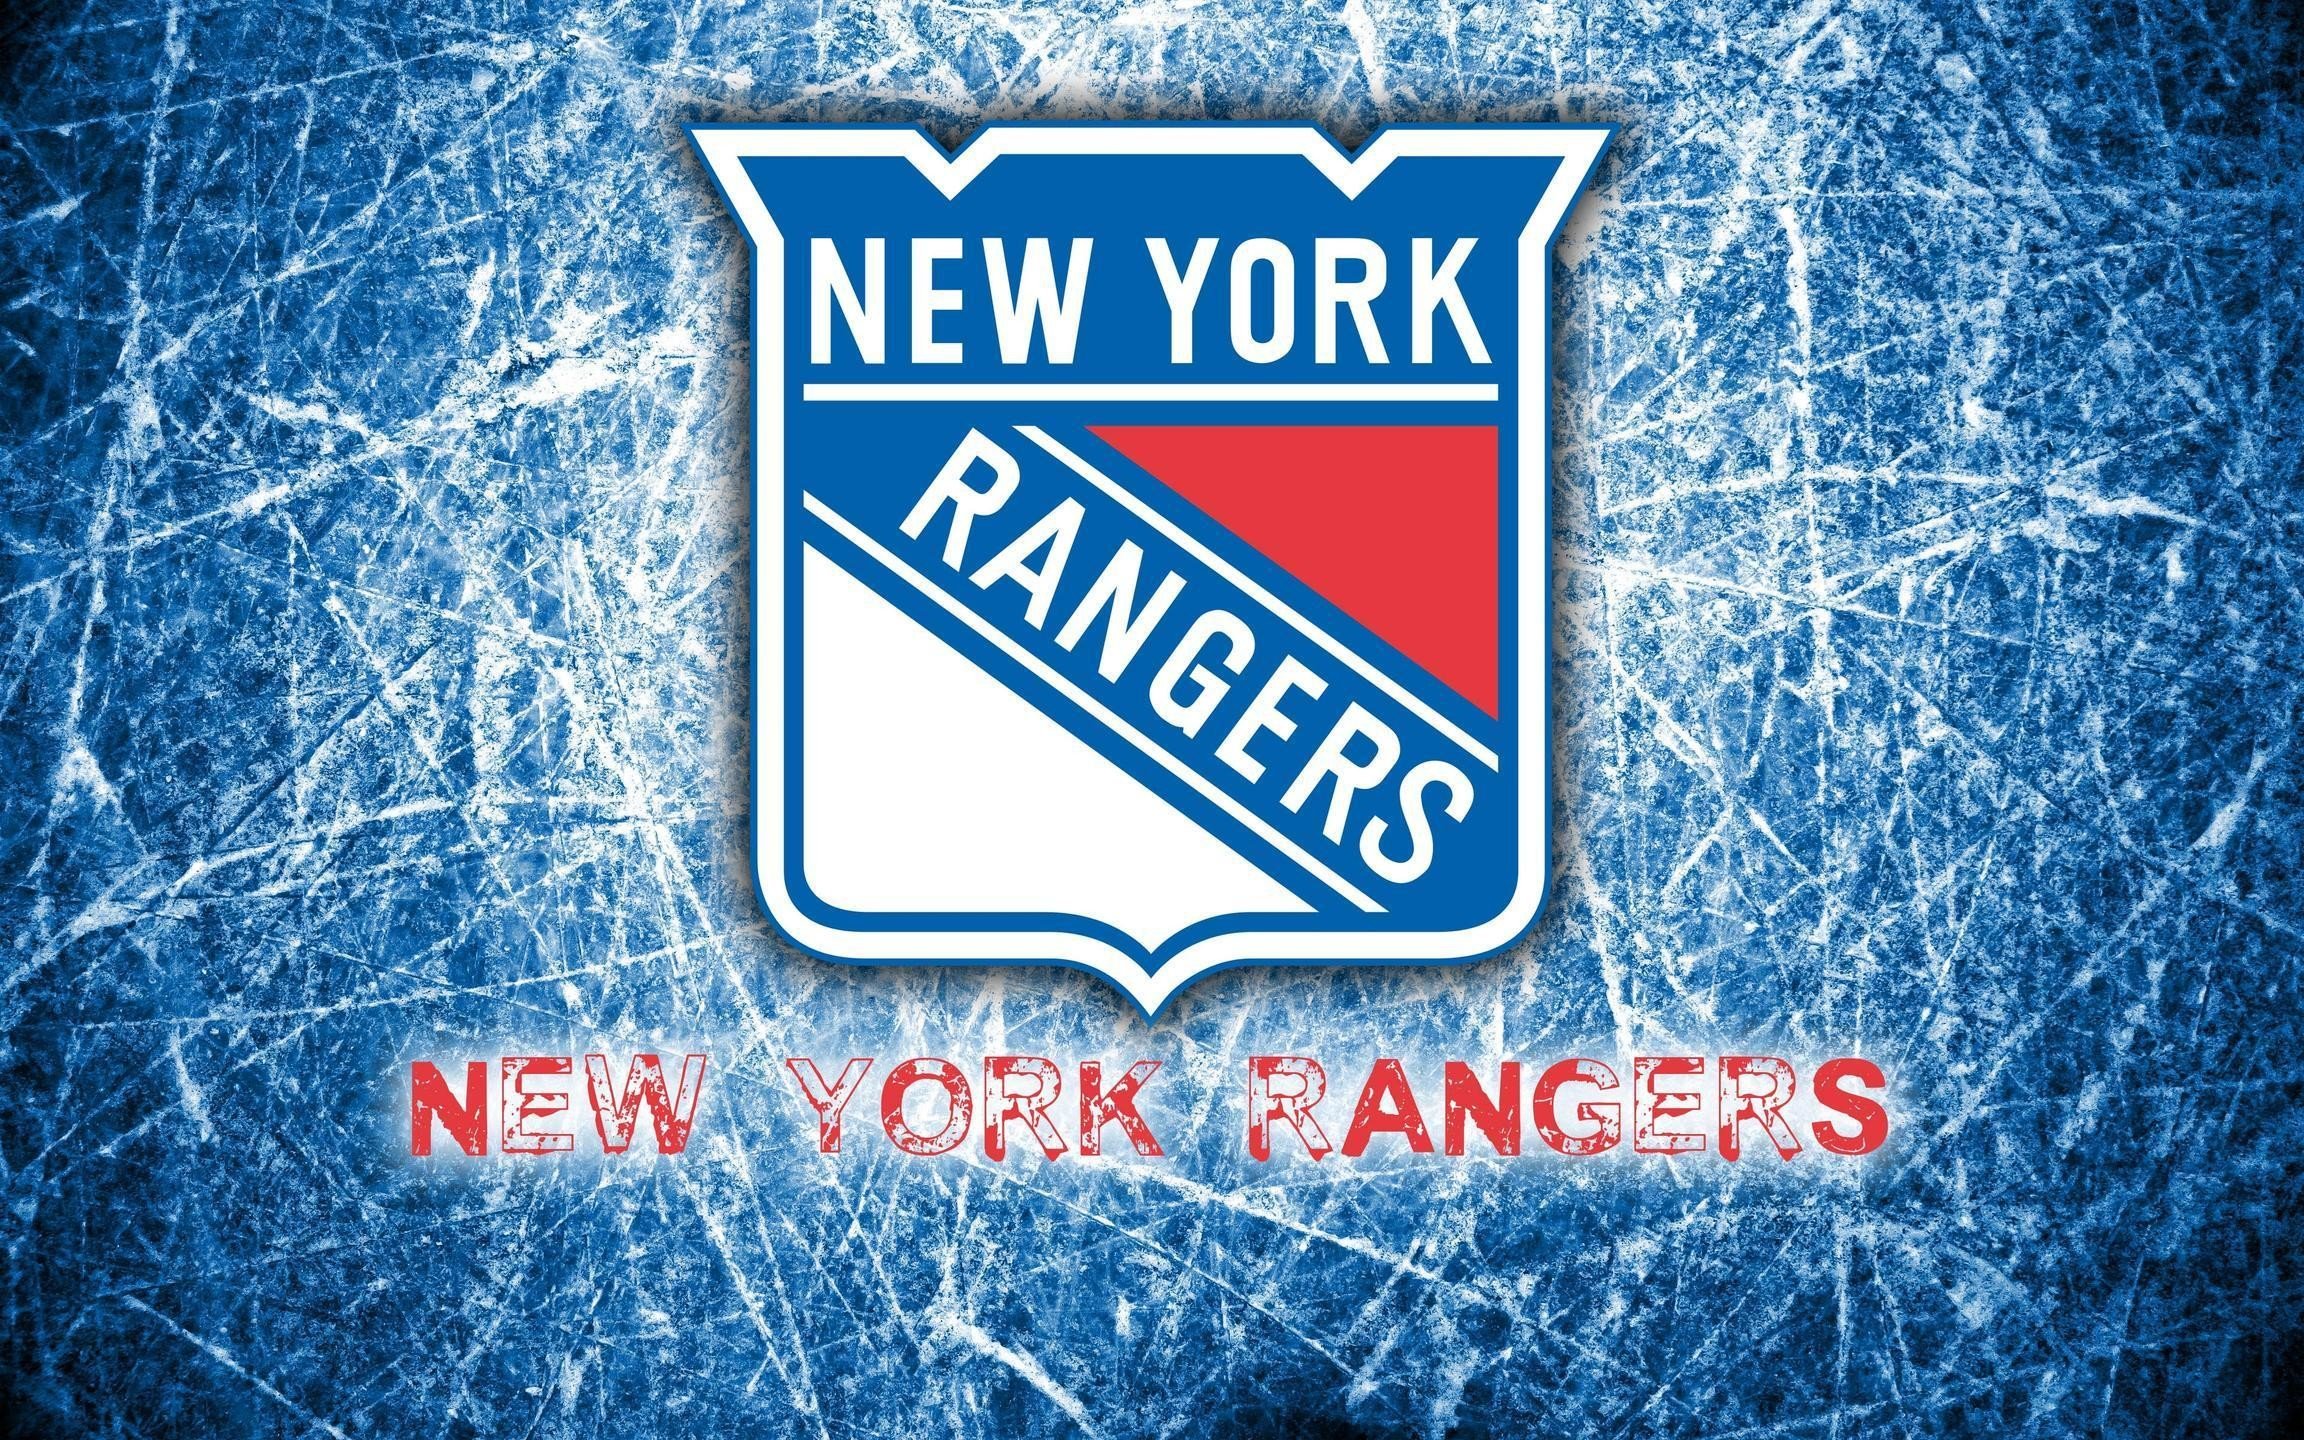 2304x1440 New York Rangers 2014 Logo Wallpaper Wide or HD | Sports Wallpapers